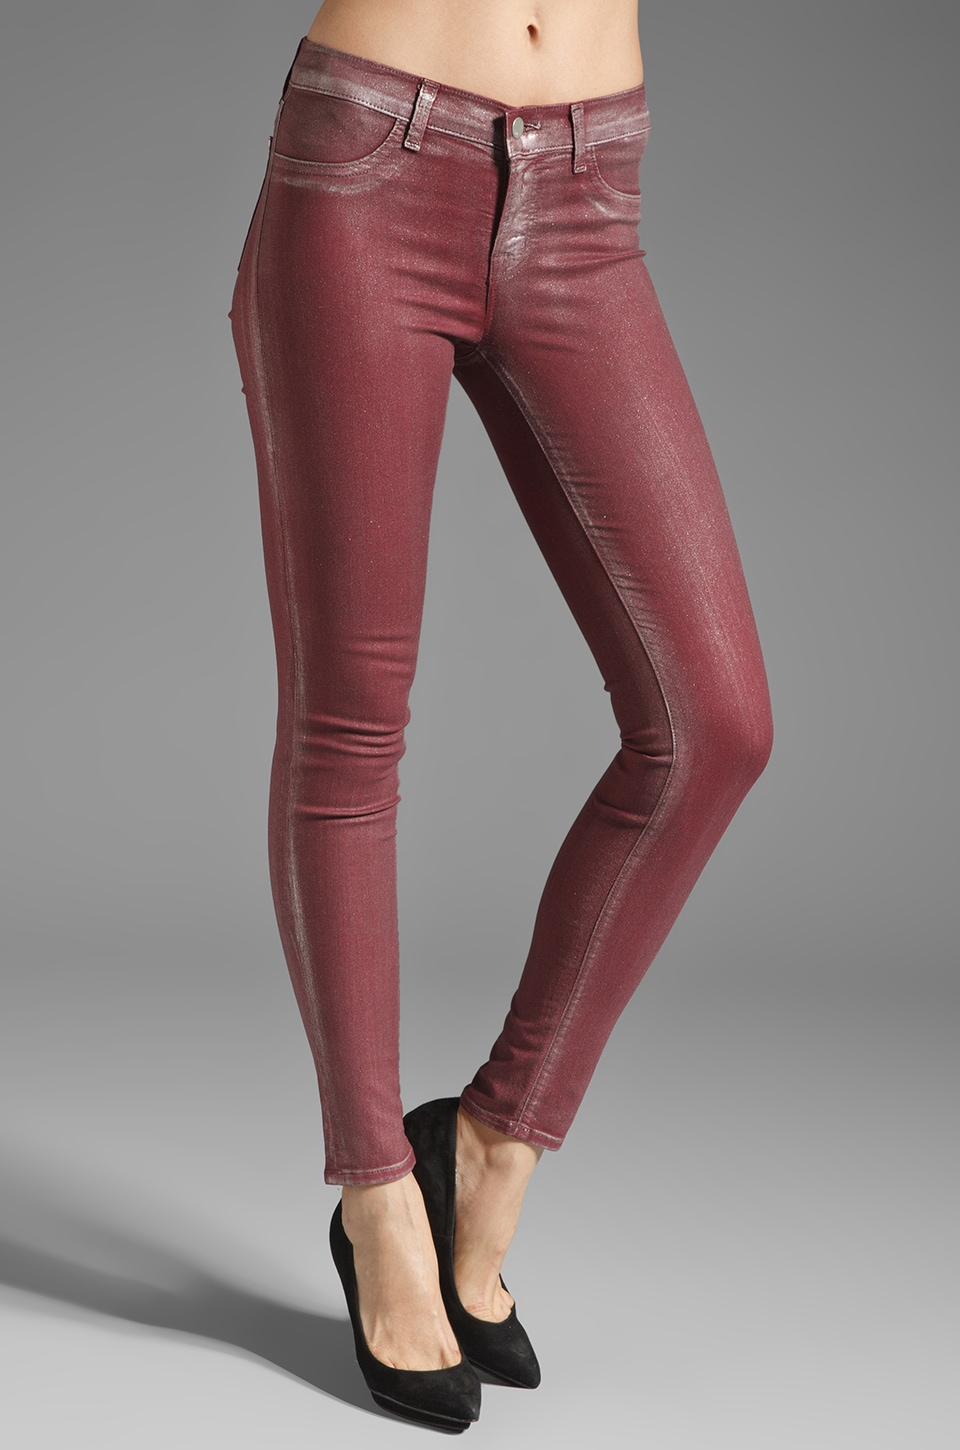 J Brand Coated Skinny in Ruby Bullet